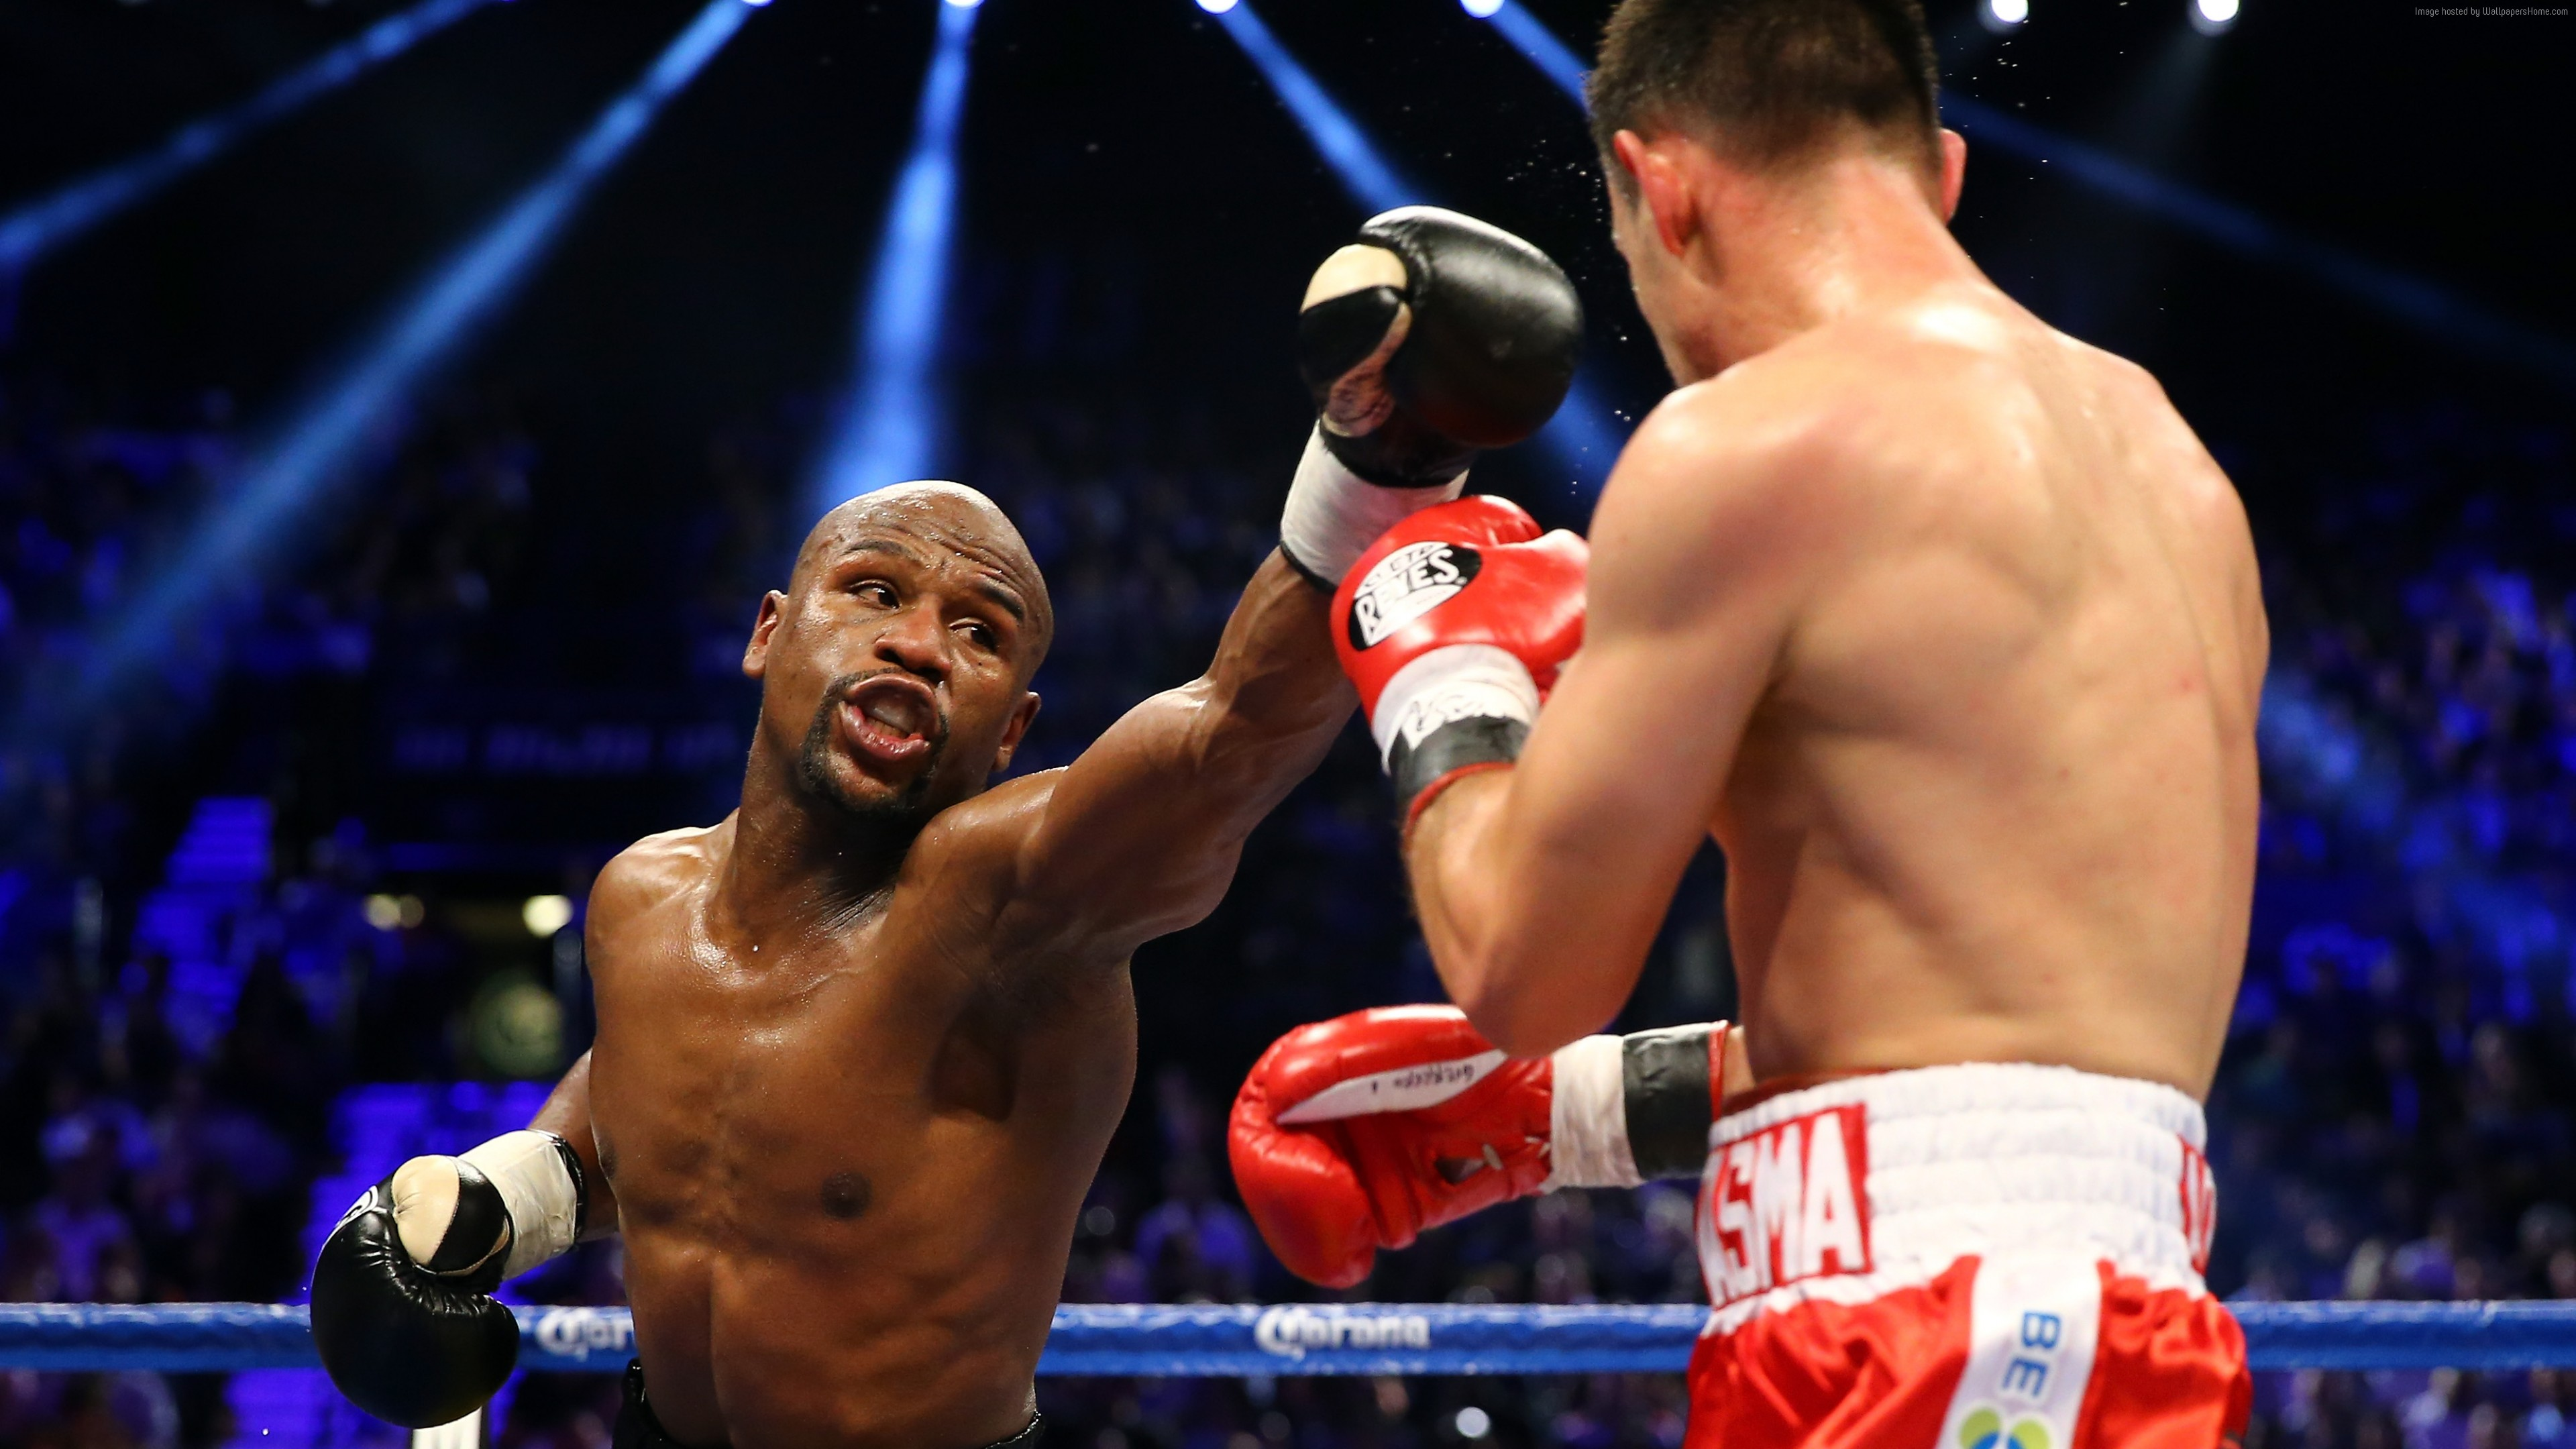 Wallpaper boxing, Floyd Mayweather, American boxer, ring, light, Sport